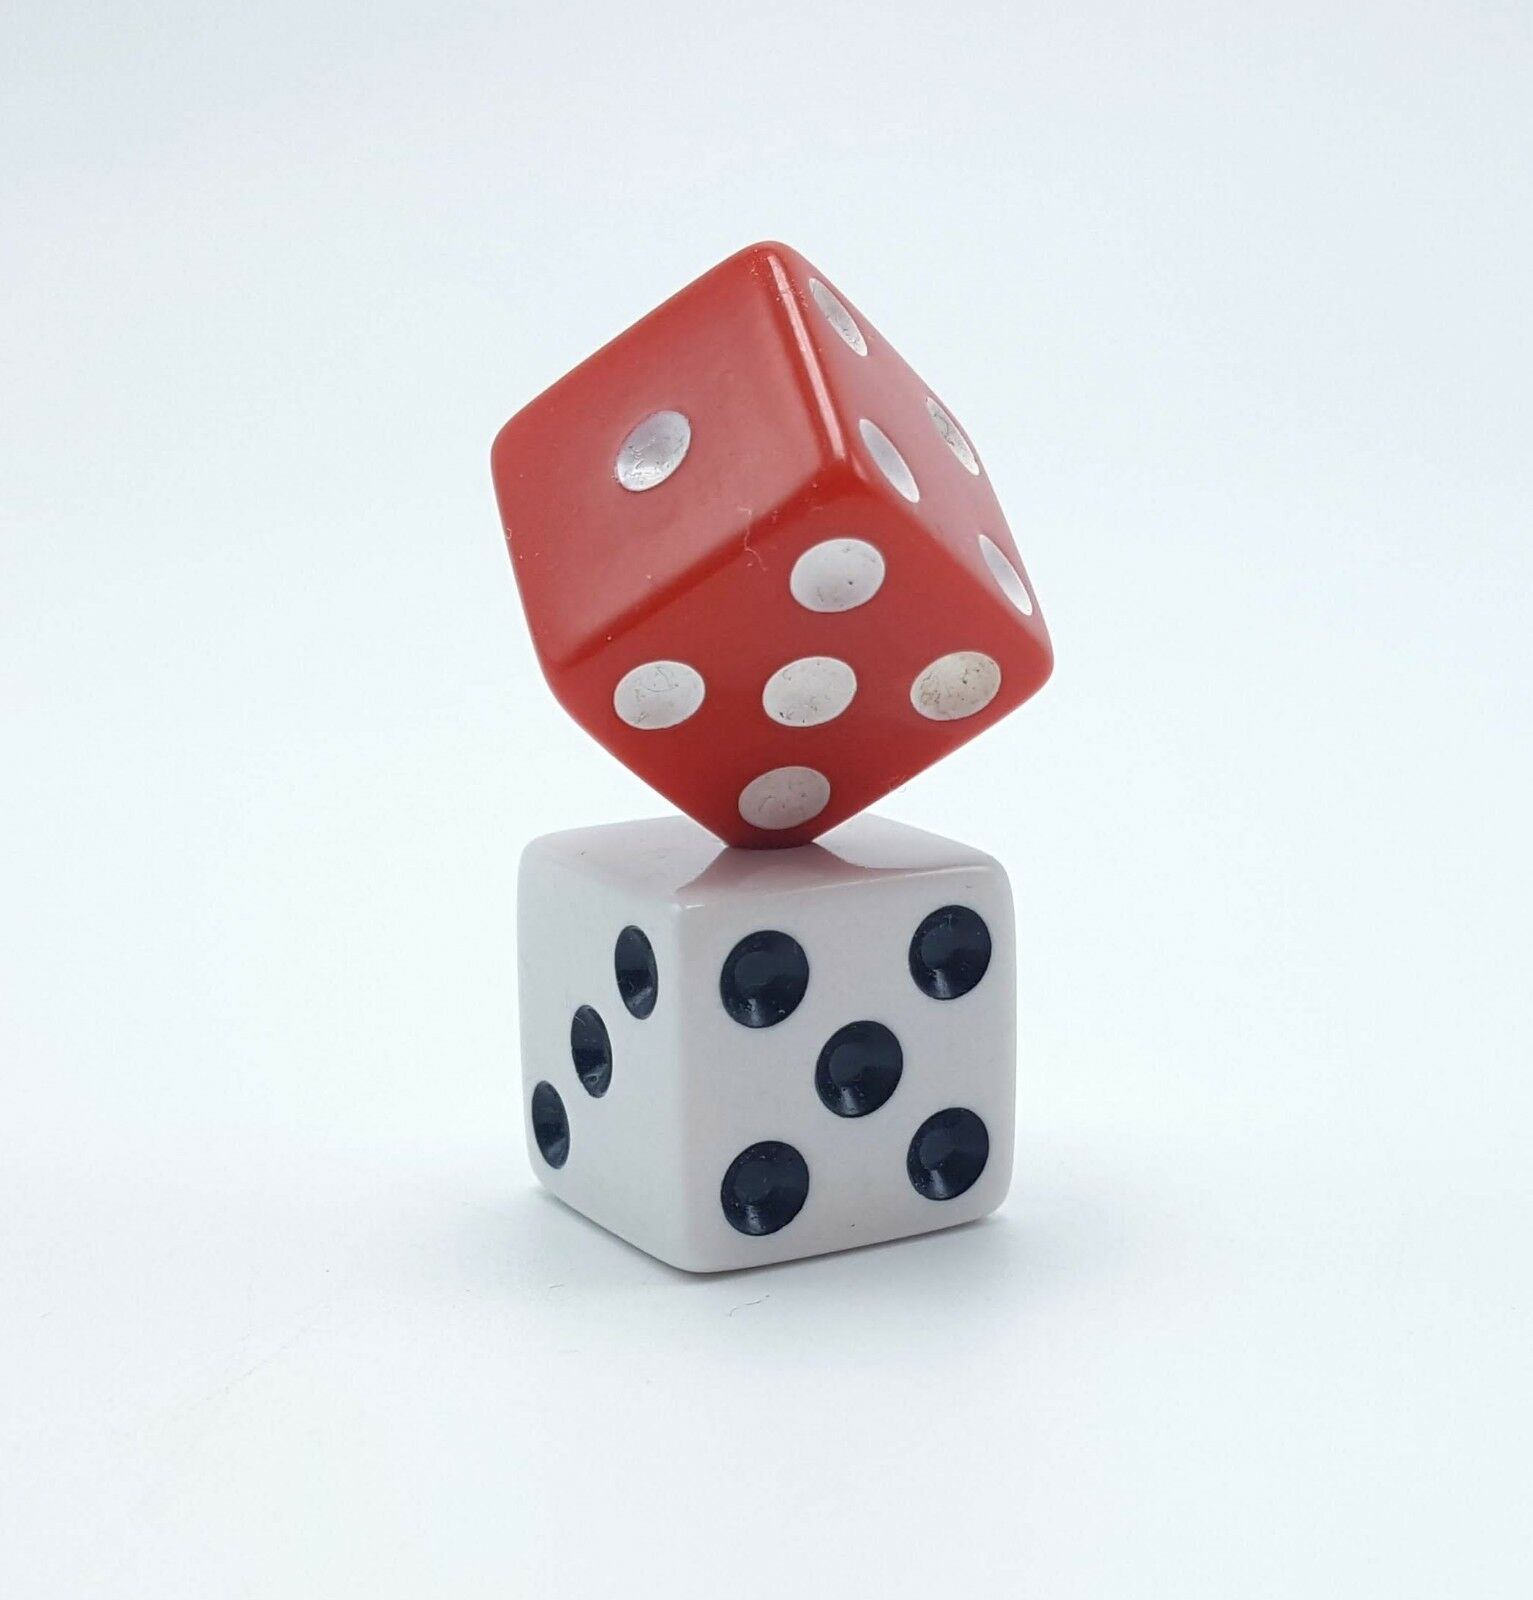 Red & White Dice Six Sided Replacement Game Part Pieces Set